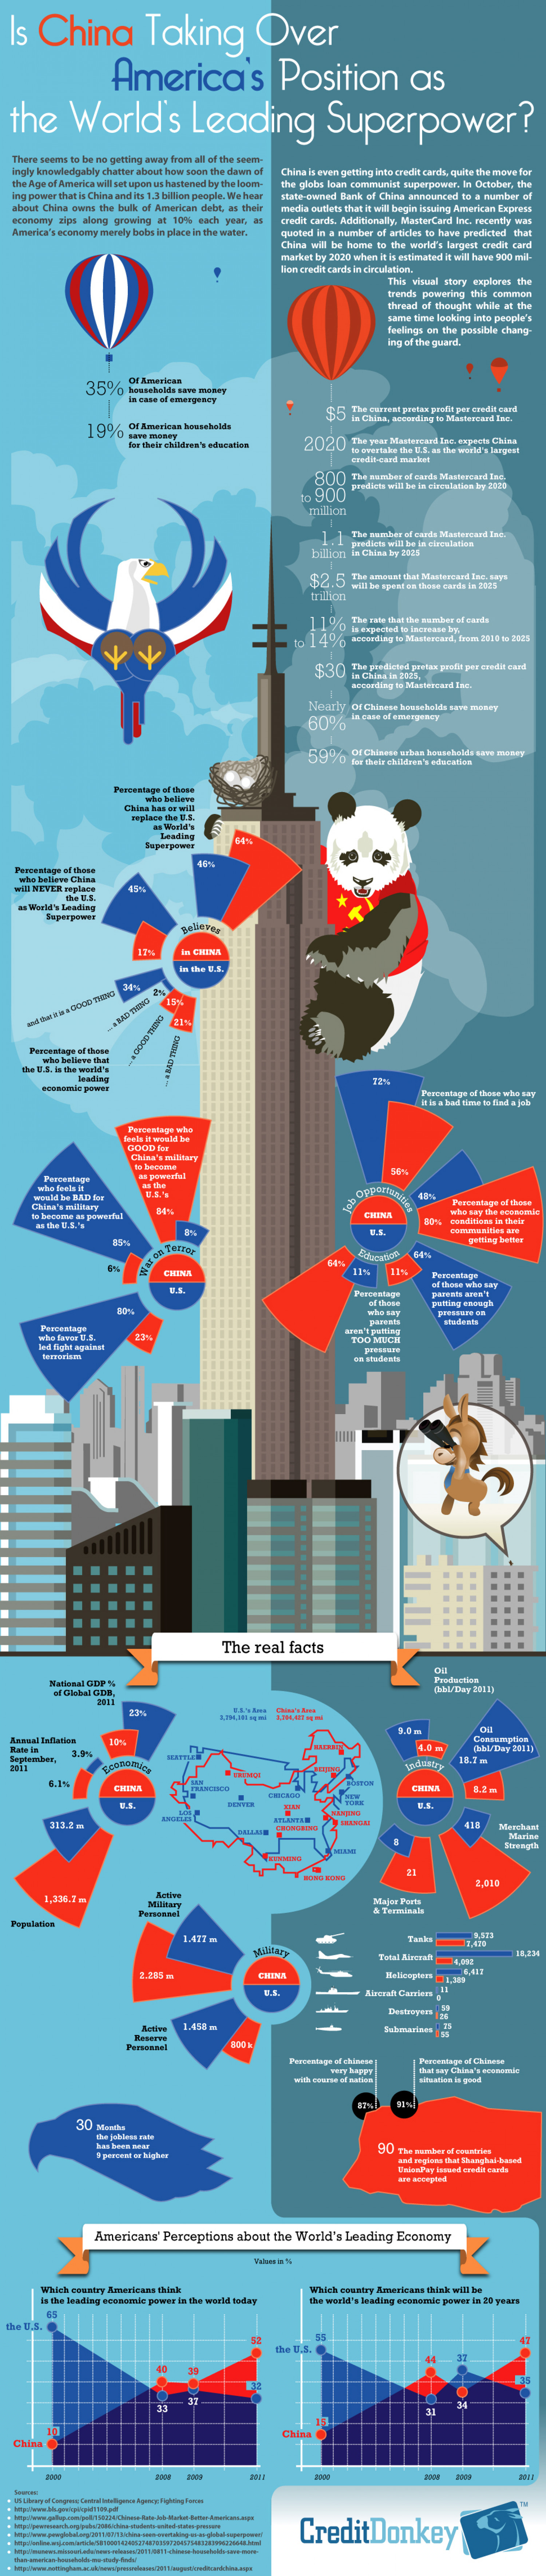 China vs US Economy: Perceptions, Opportunities and the Real Facts Infographic